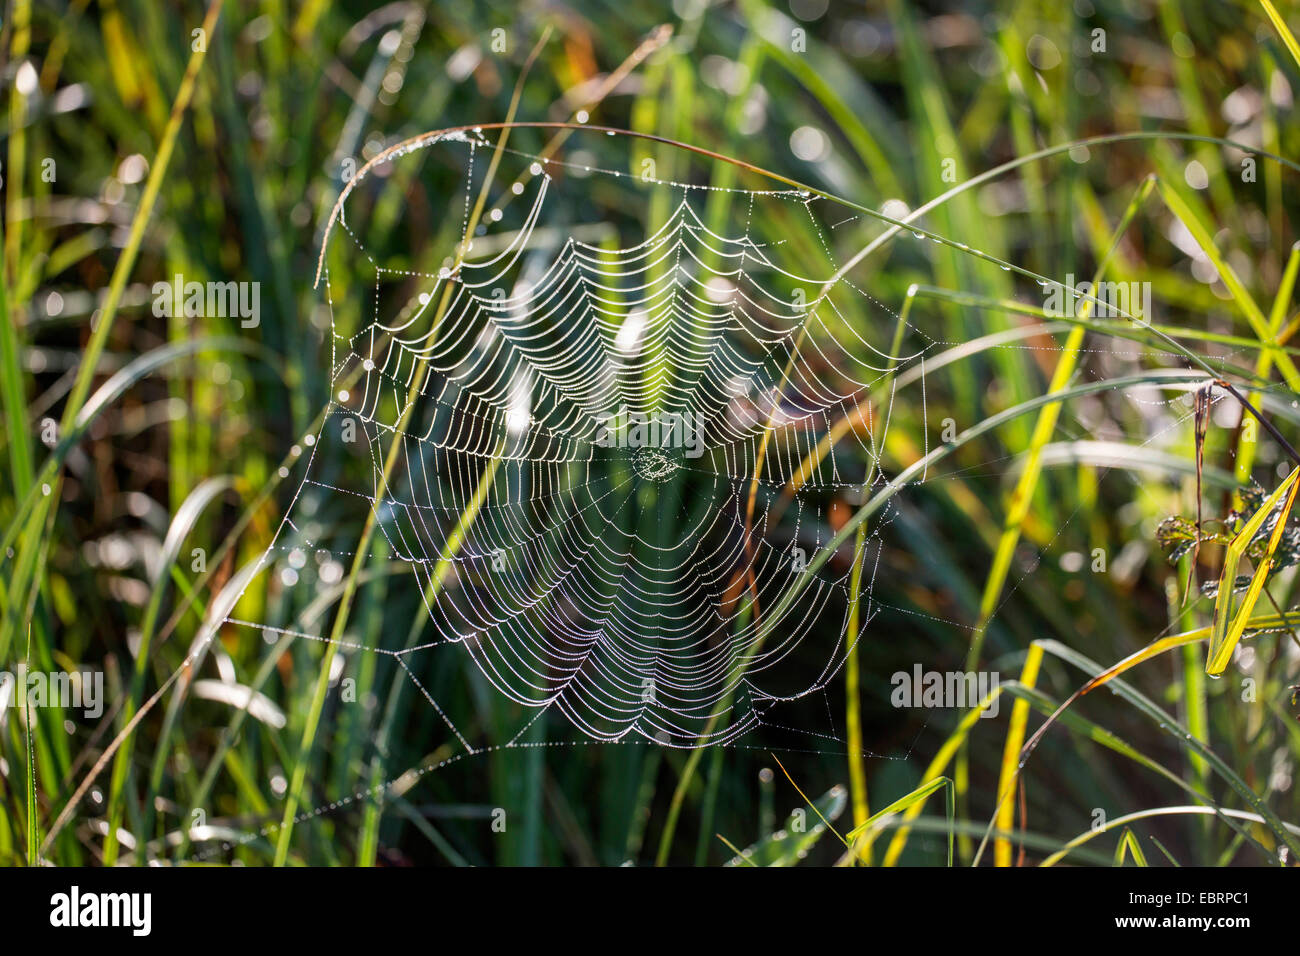 orbweavers, orb-weaving spiders (broad-bodied orbweavers) (Araneidae), spider web with morning dew, Germany, Bavaria - Stock Image